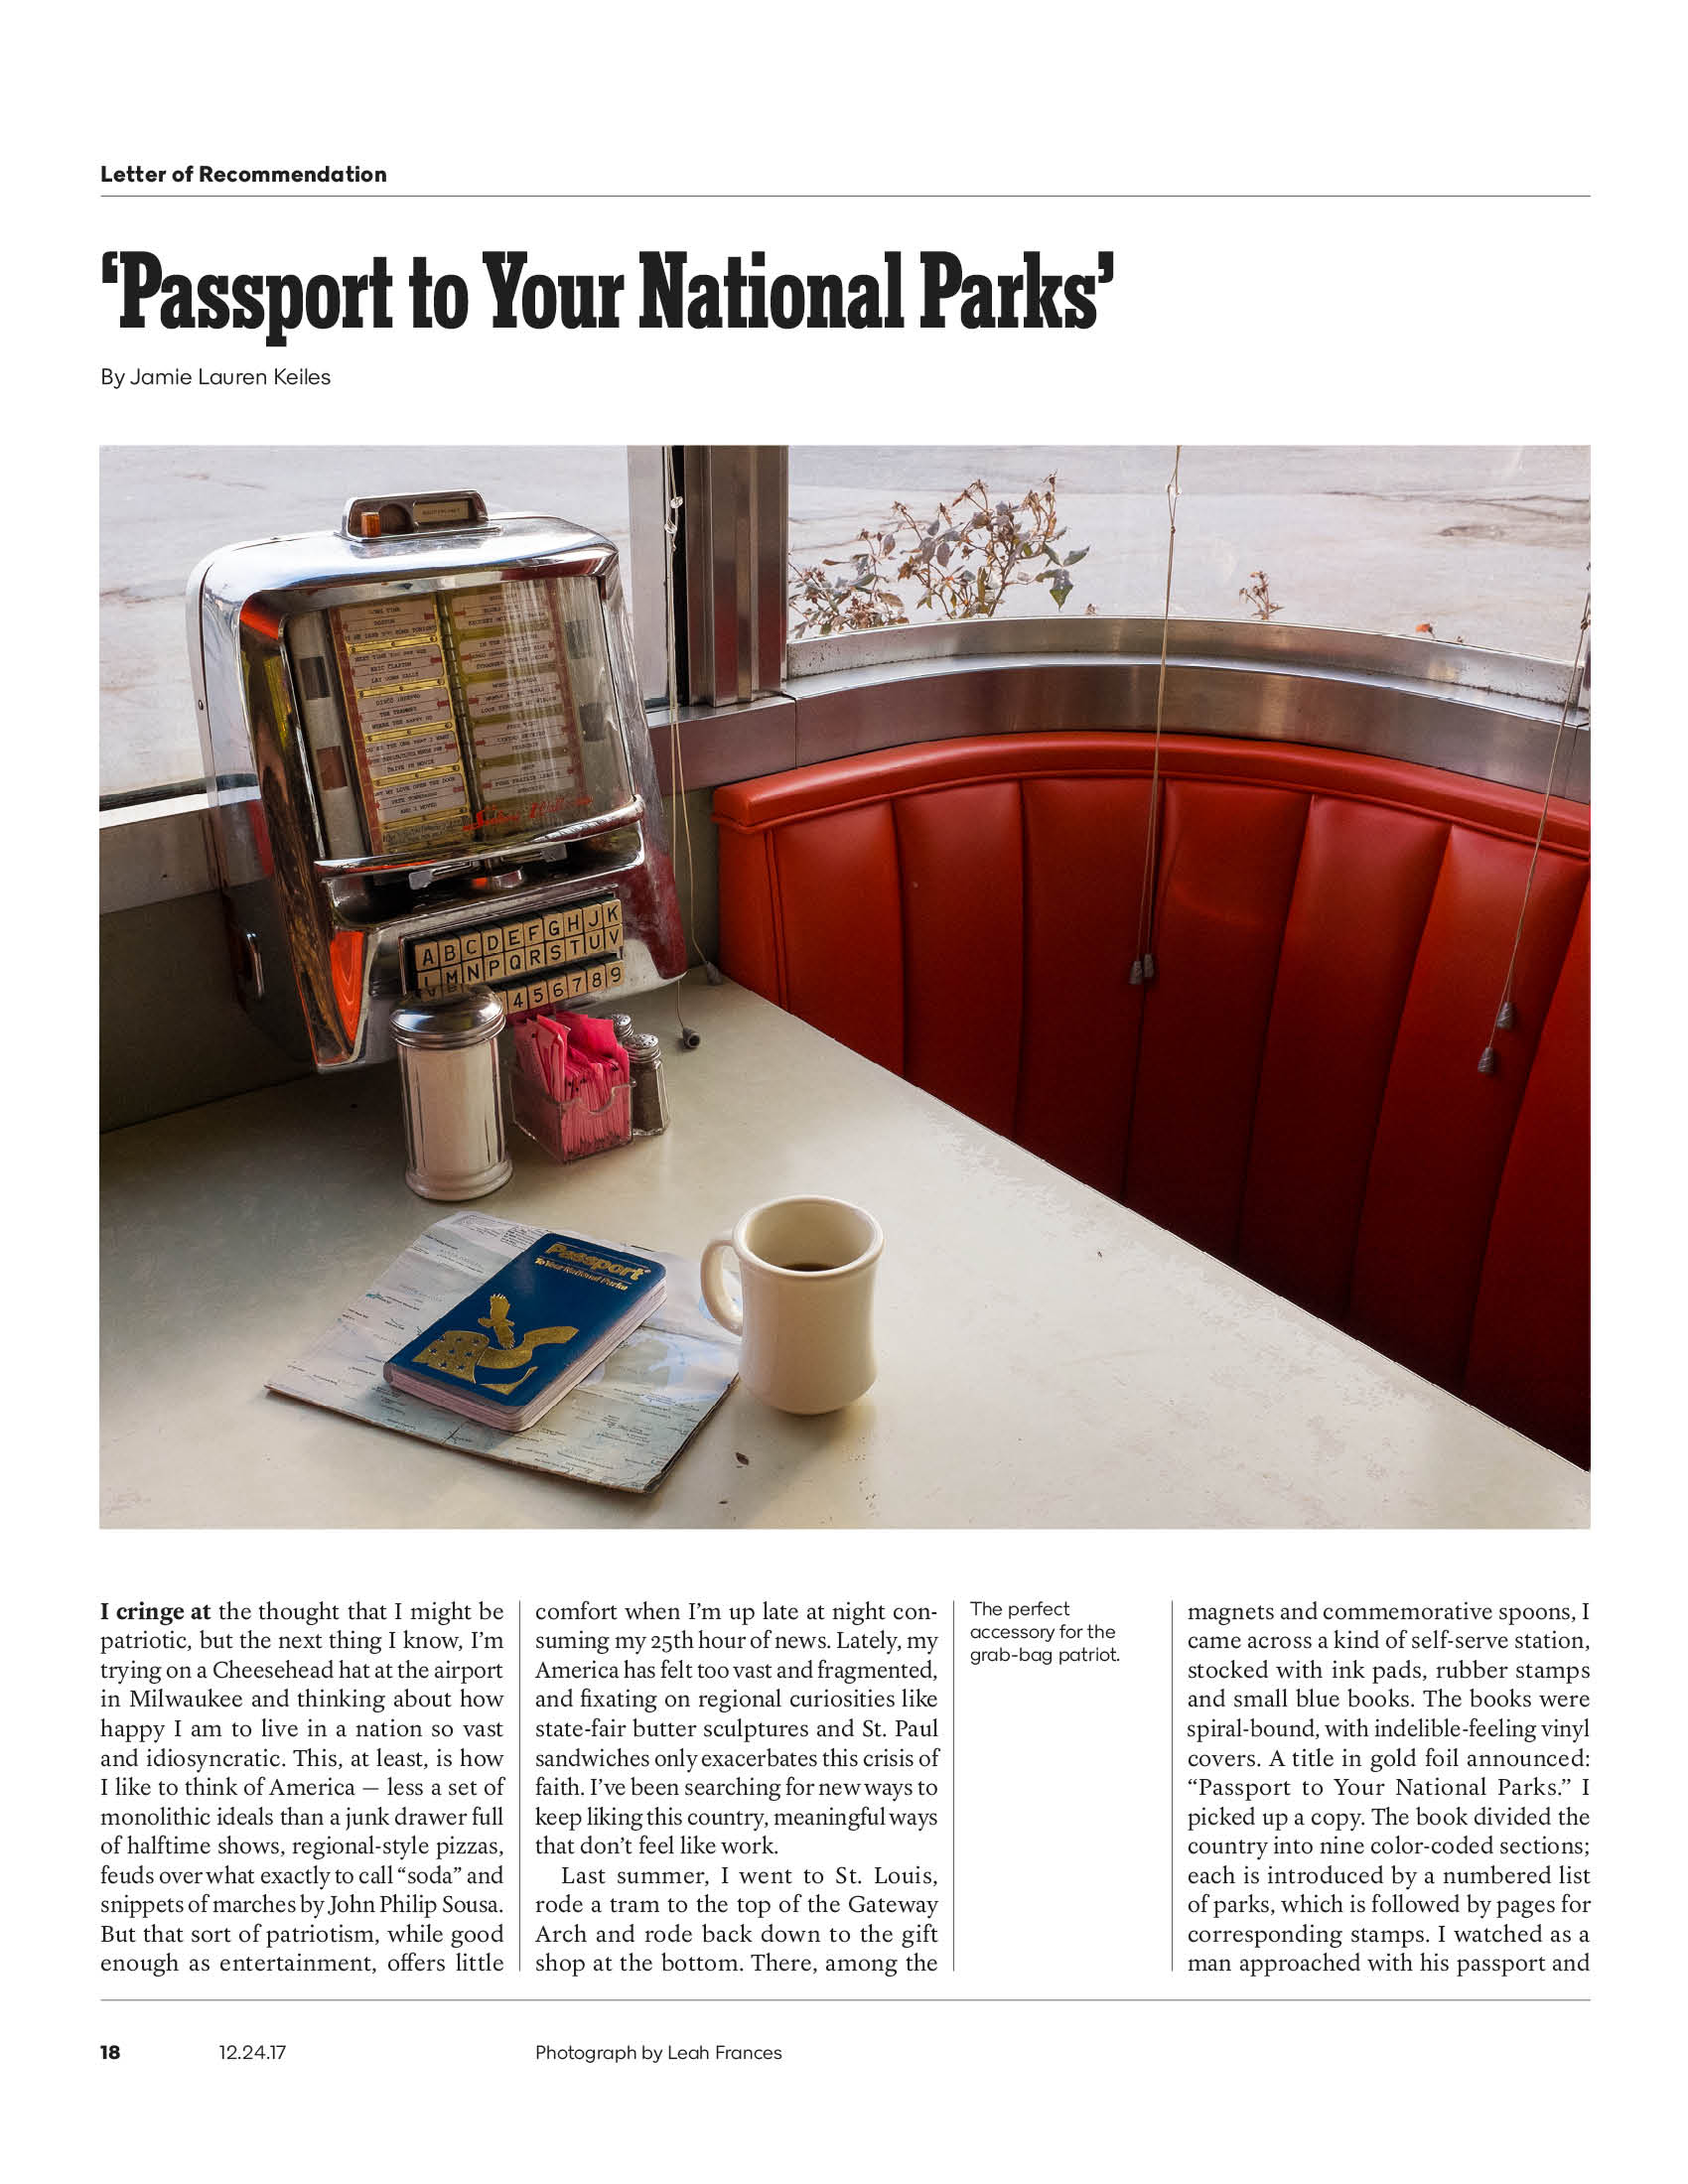 """The New York Times Magazine, """"Letter of Recommendation,"""" 12.24.17"""